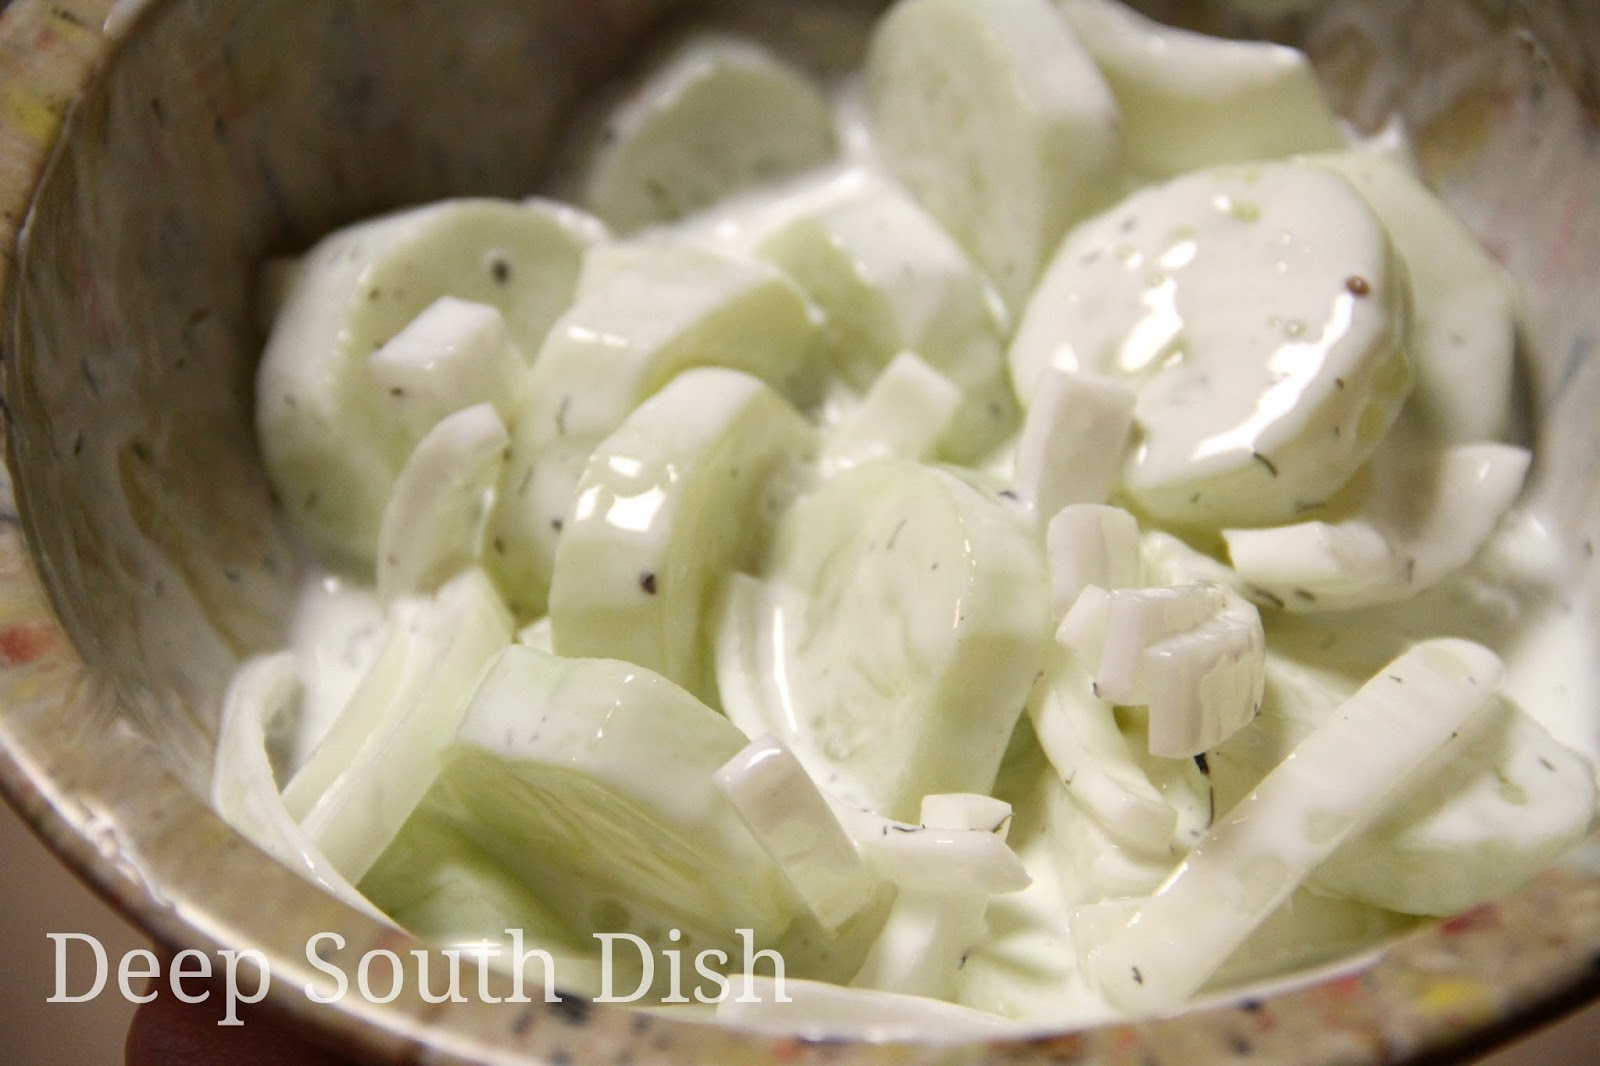 and sweet Vidalia onion salad, dressed with a vinegar and sour ...